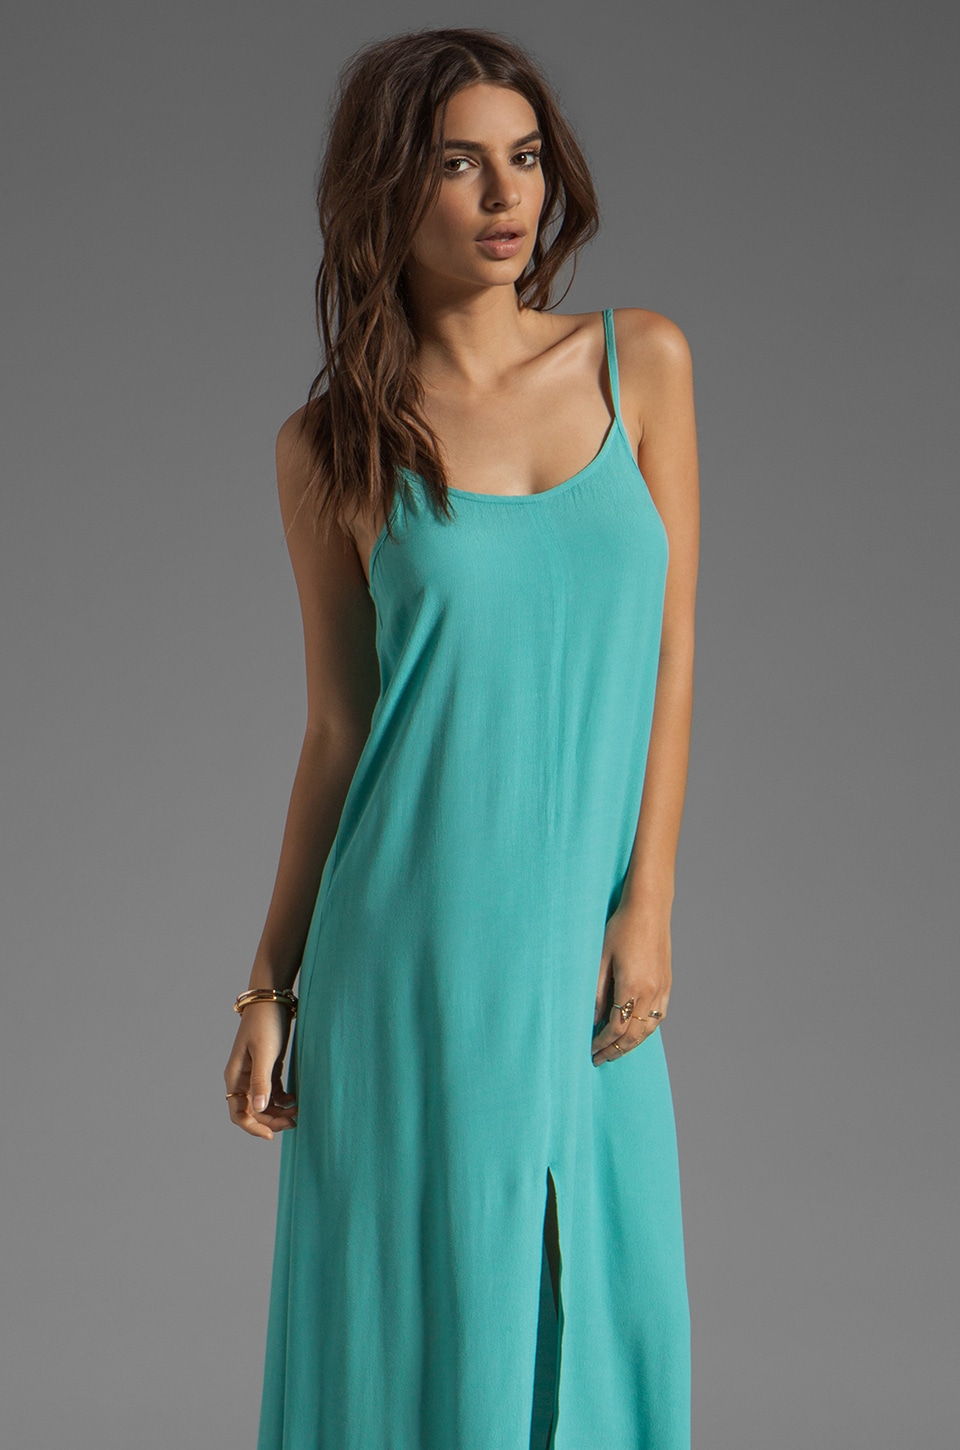 BLAQUE LABEL Maxi Tank Dress in Aqua